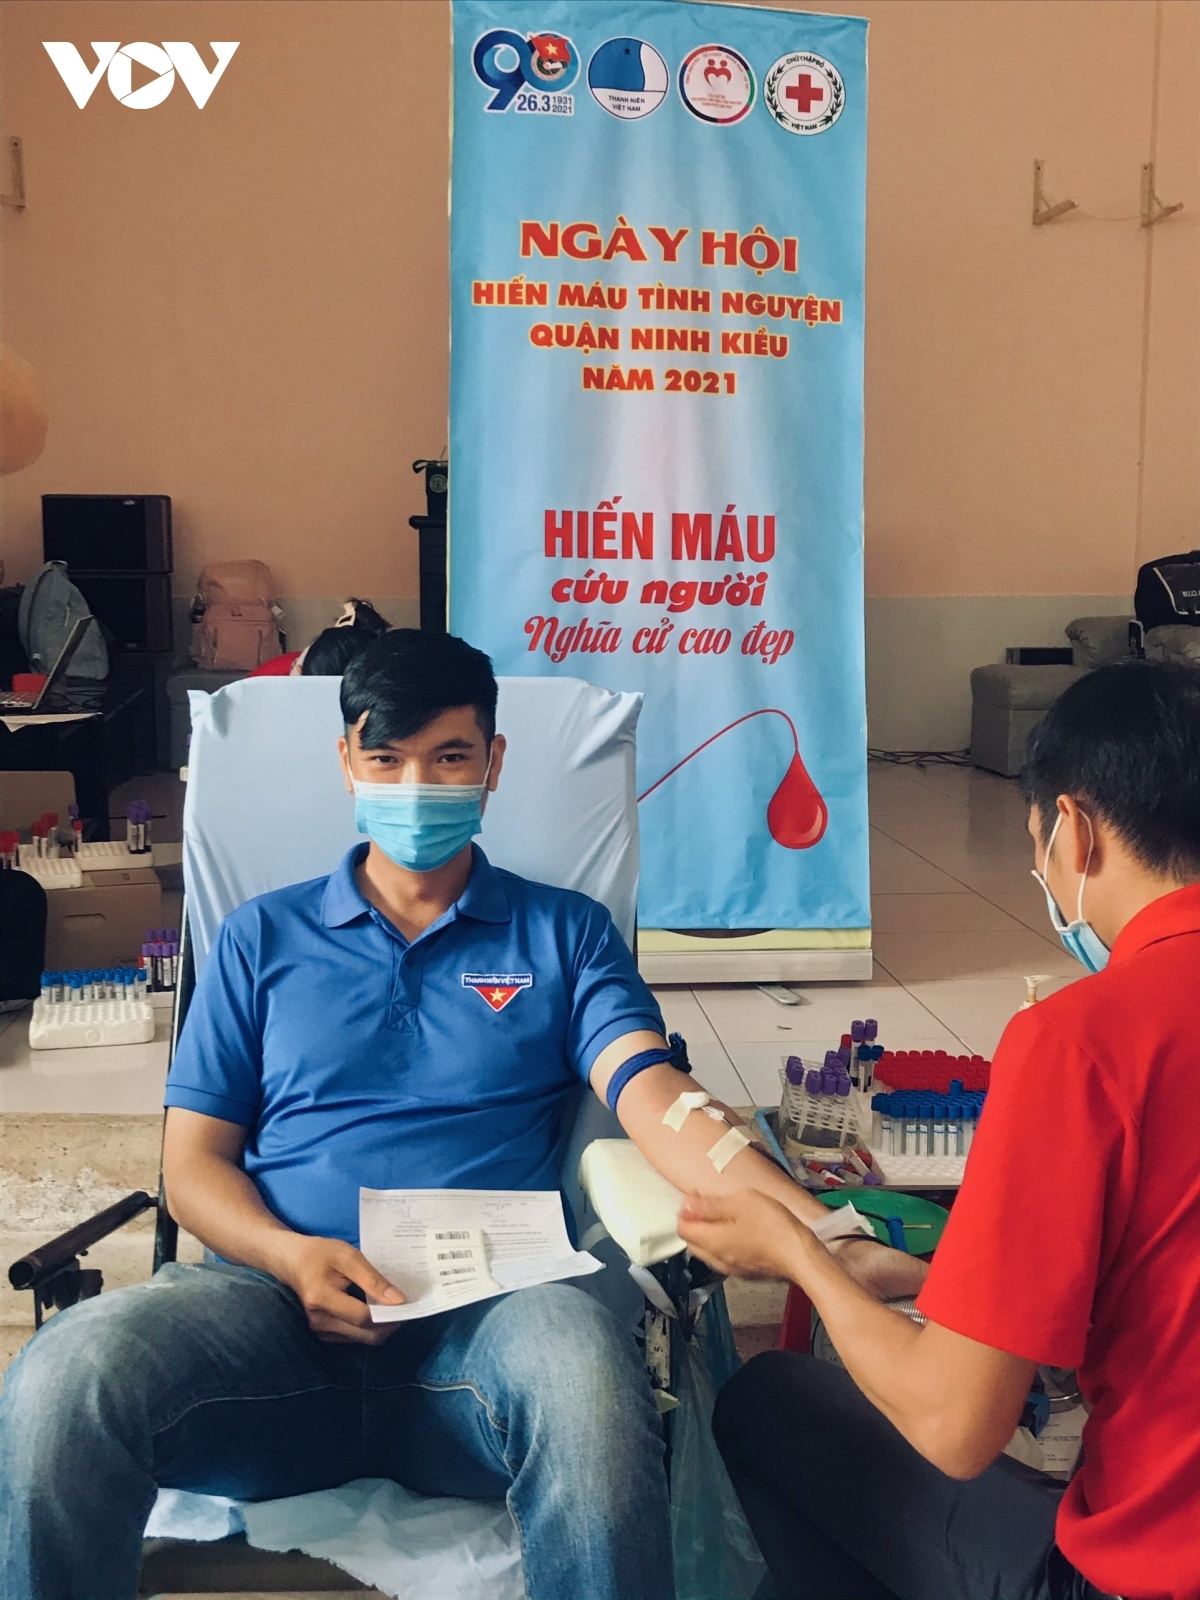 Can Tho city hosts a blood donation day, during which an estimated 750 units of blood are collected to support patients in need.